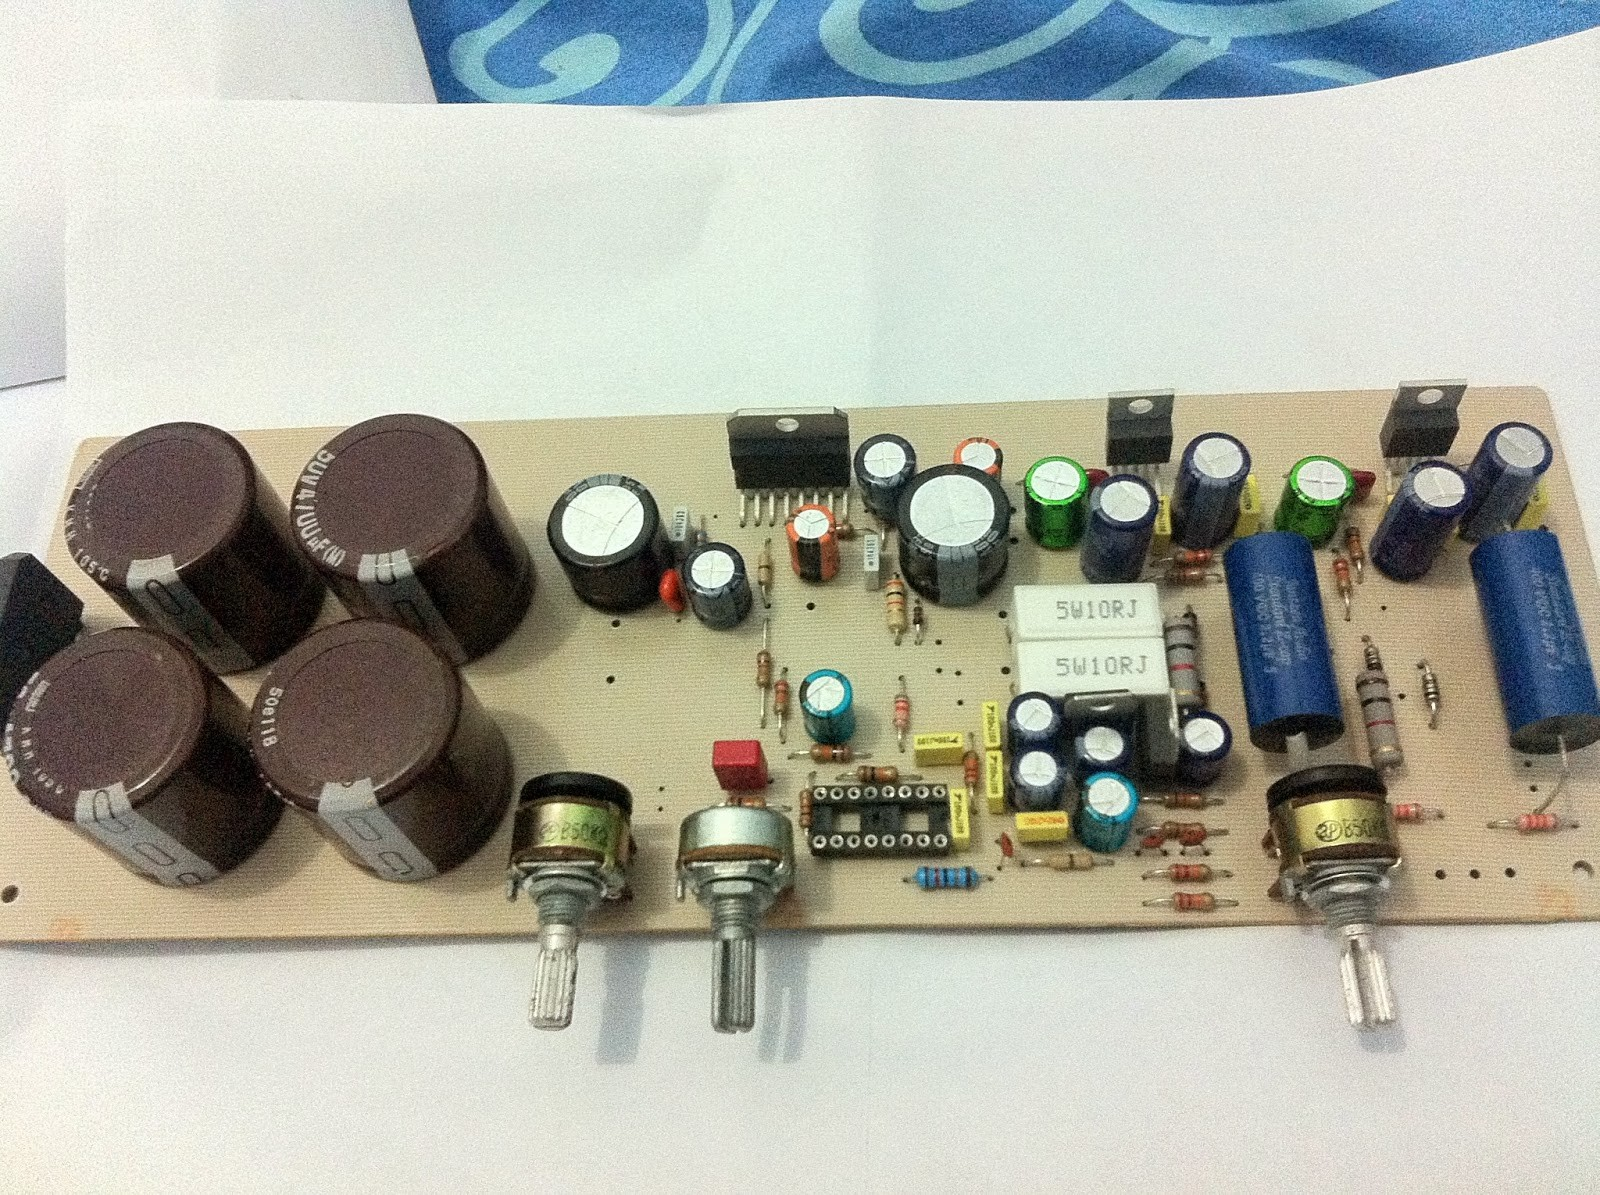 2.1 Amplifier With TDA7294 and LM1875 18